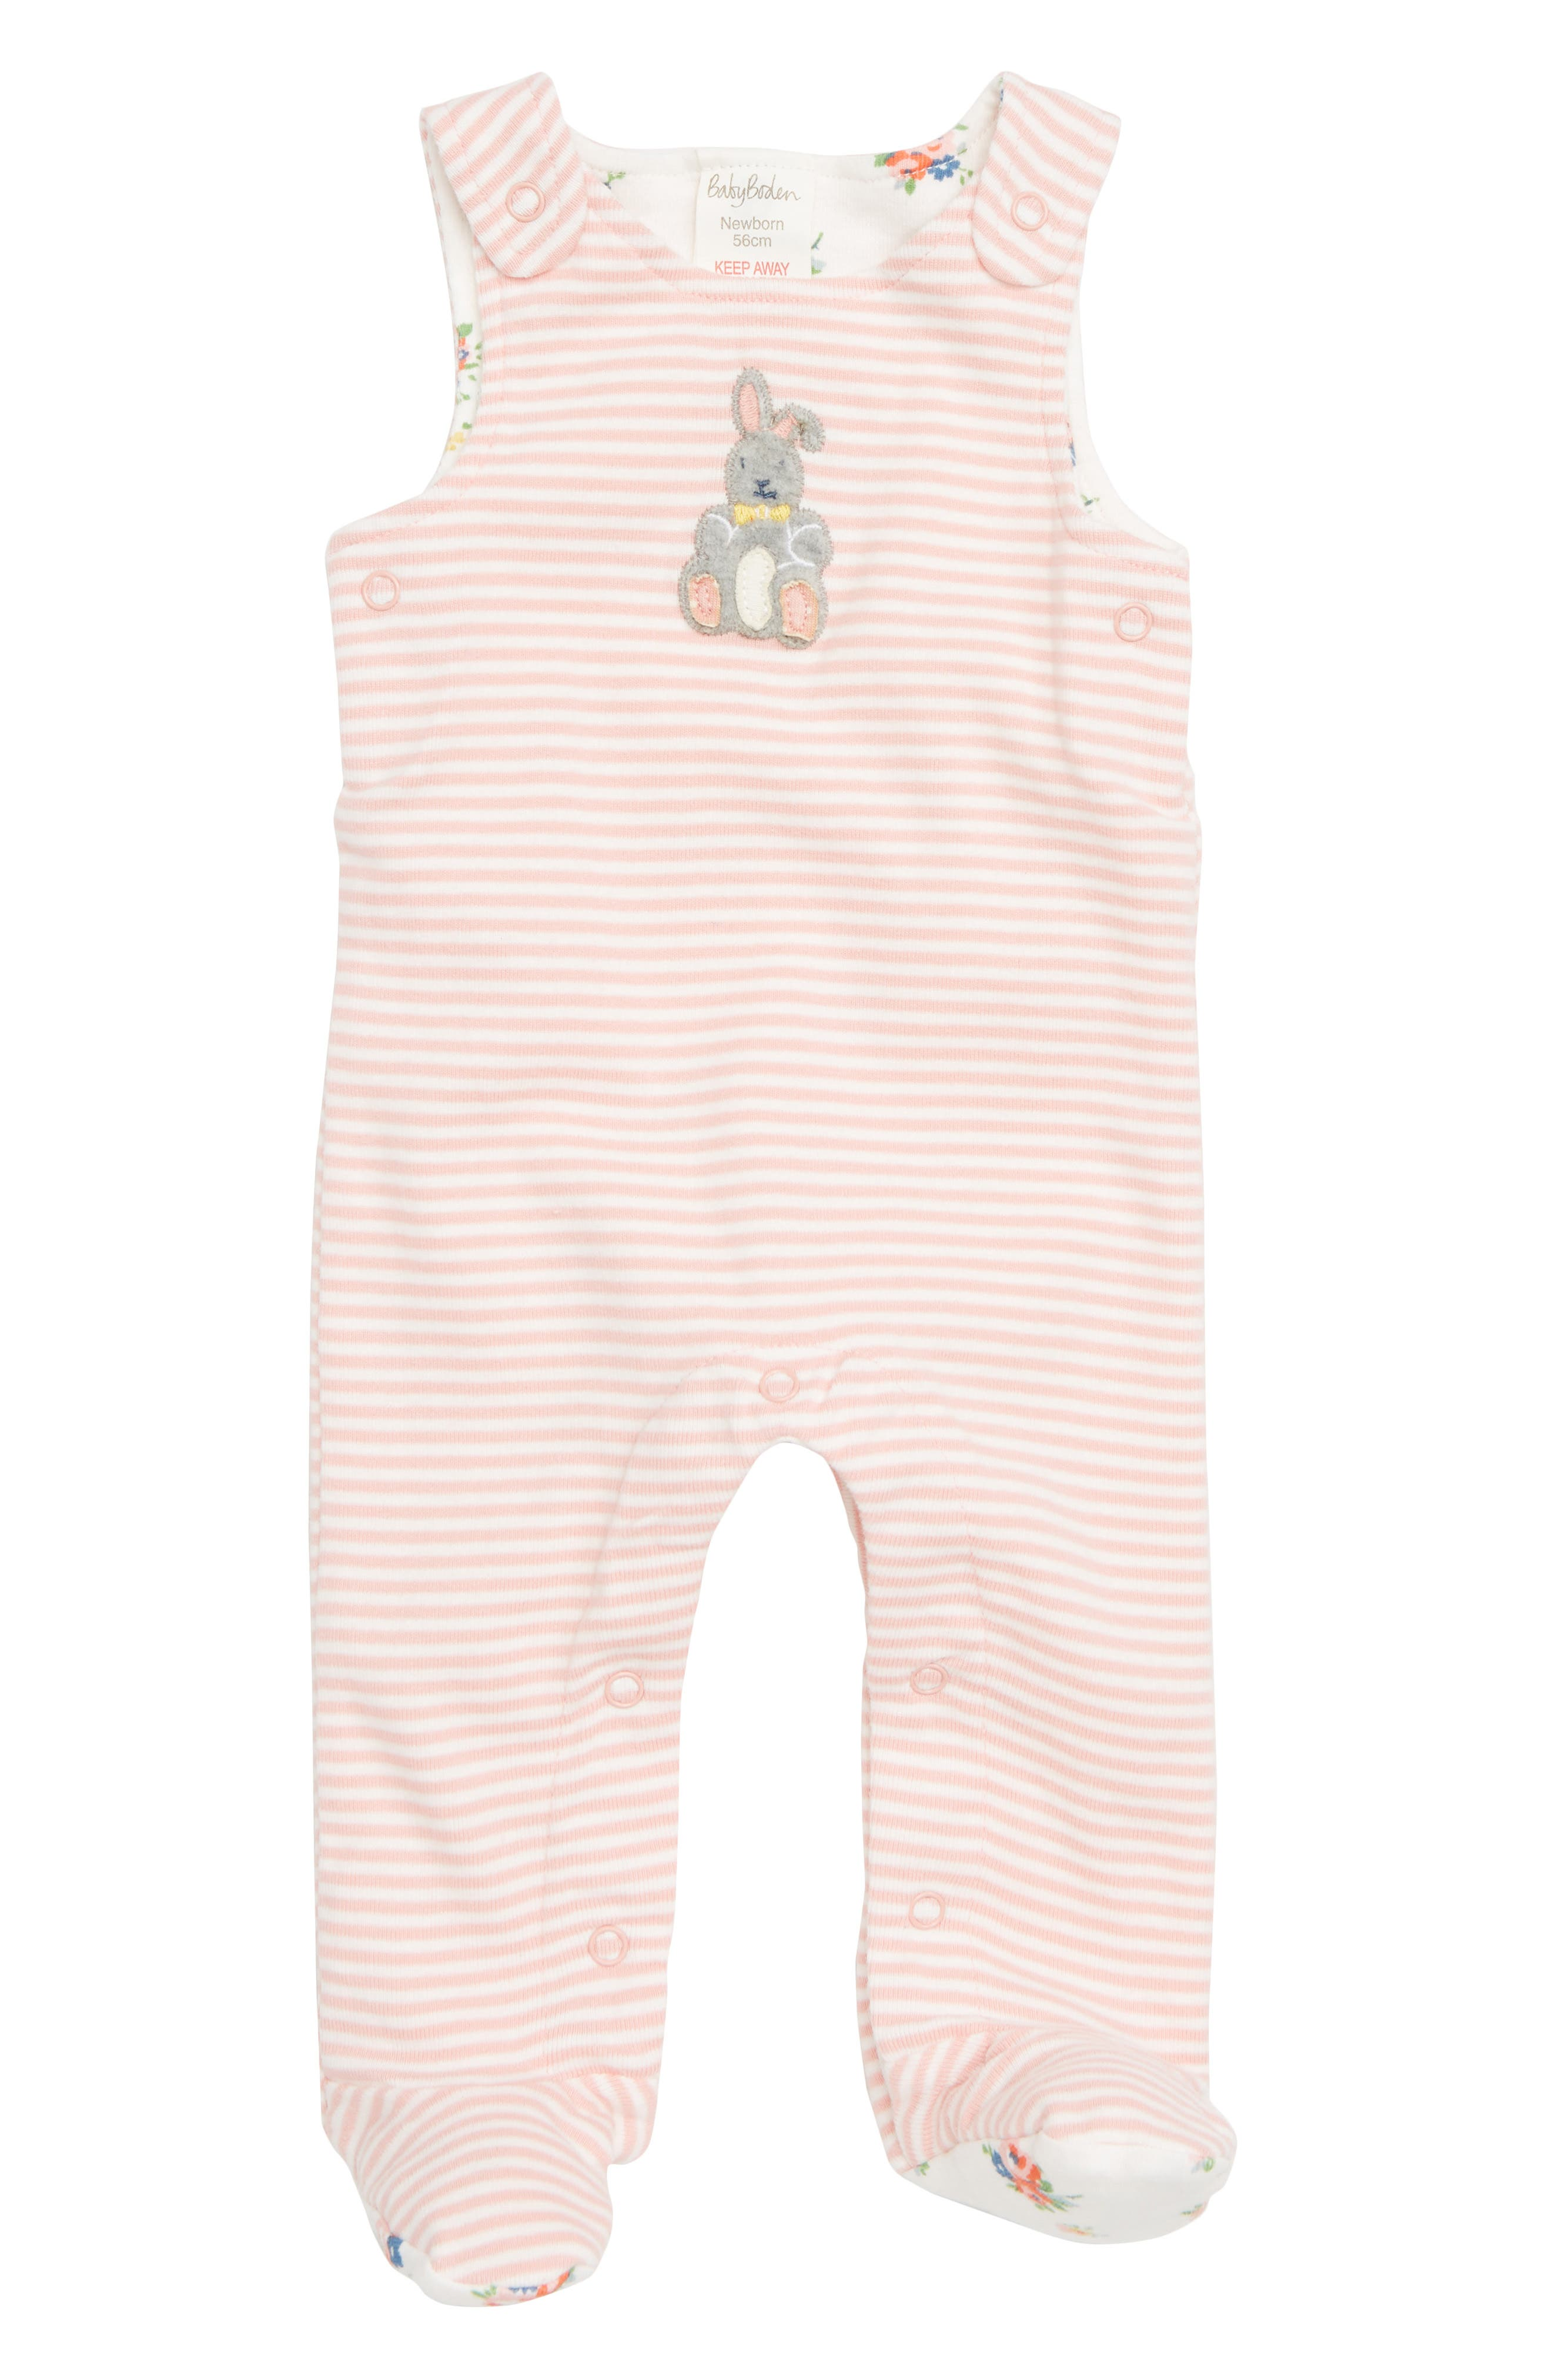 Organic Cotton Dunagree Footie,                             Main thumbnail 1, color,                             SHELL PINK/ IVORY BUNNY